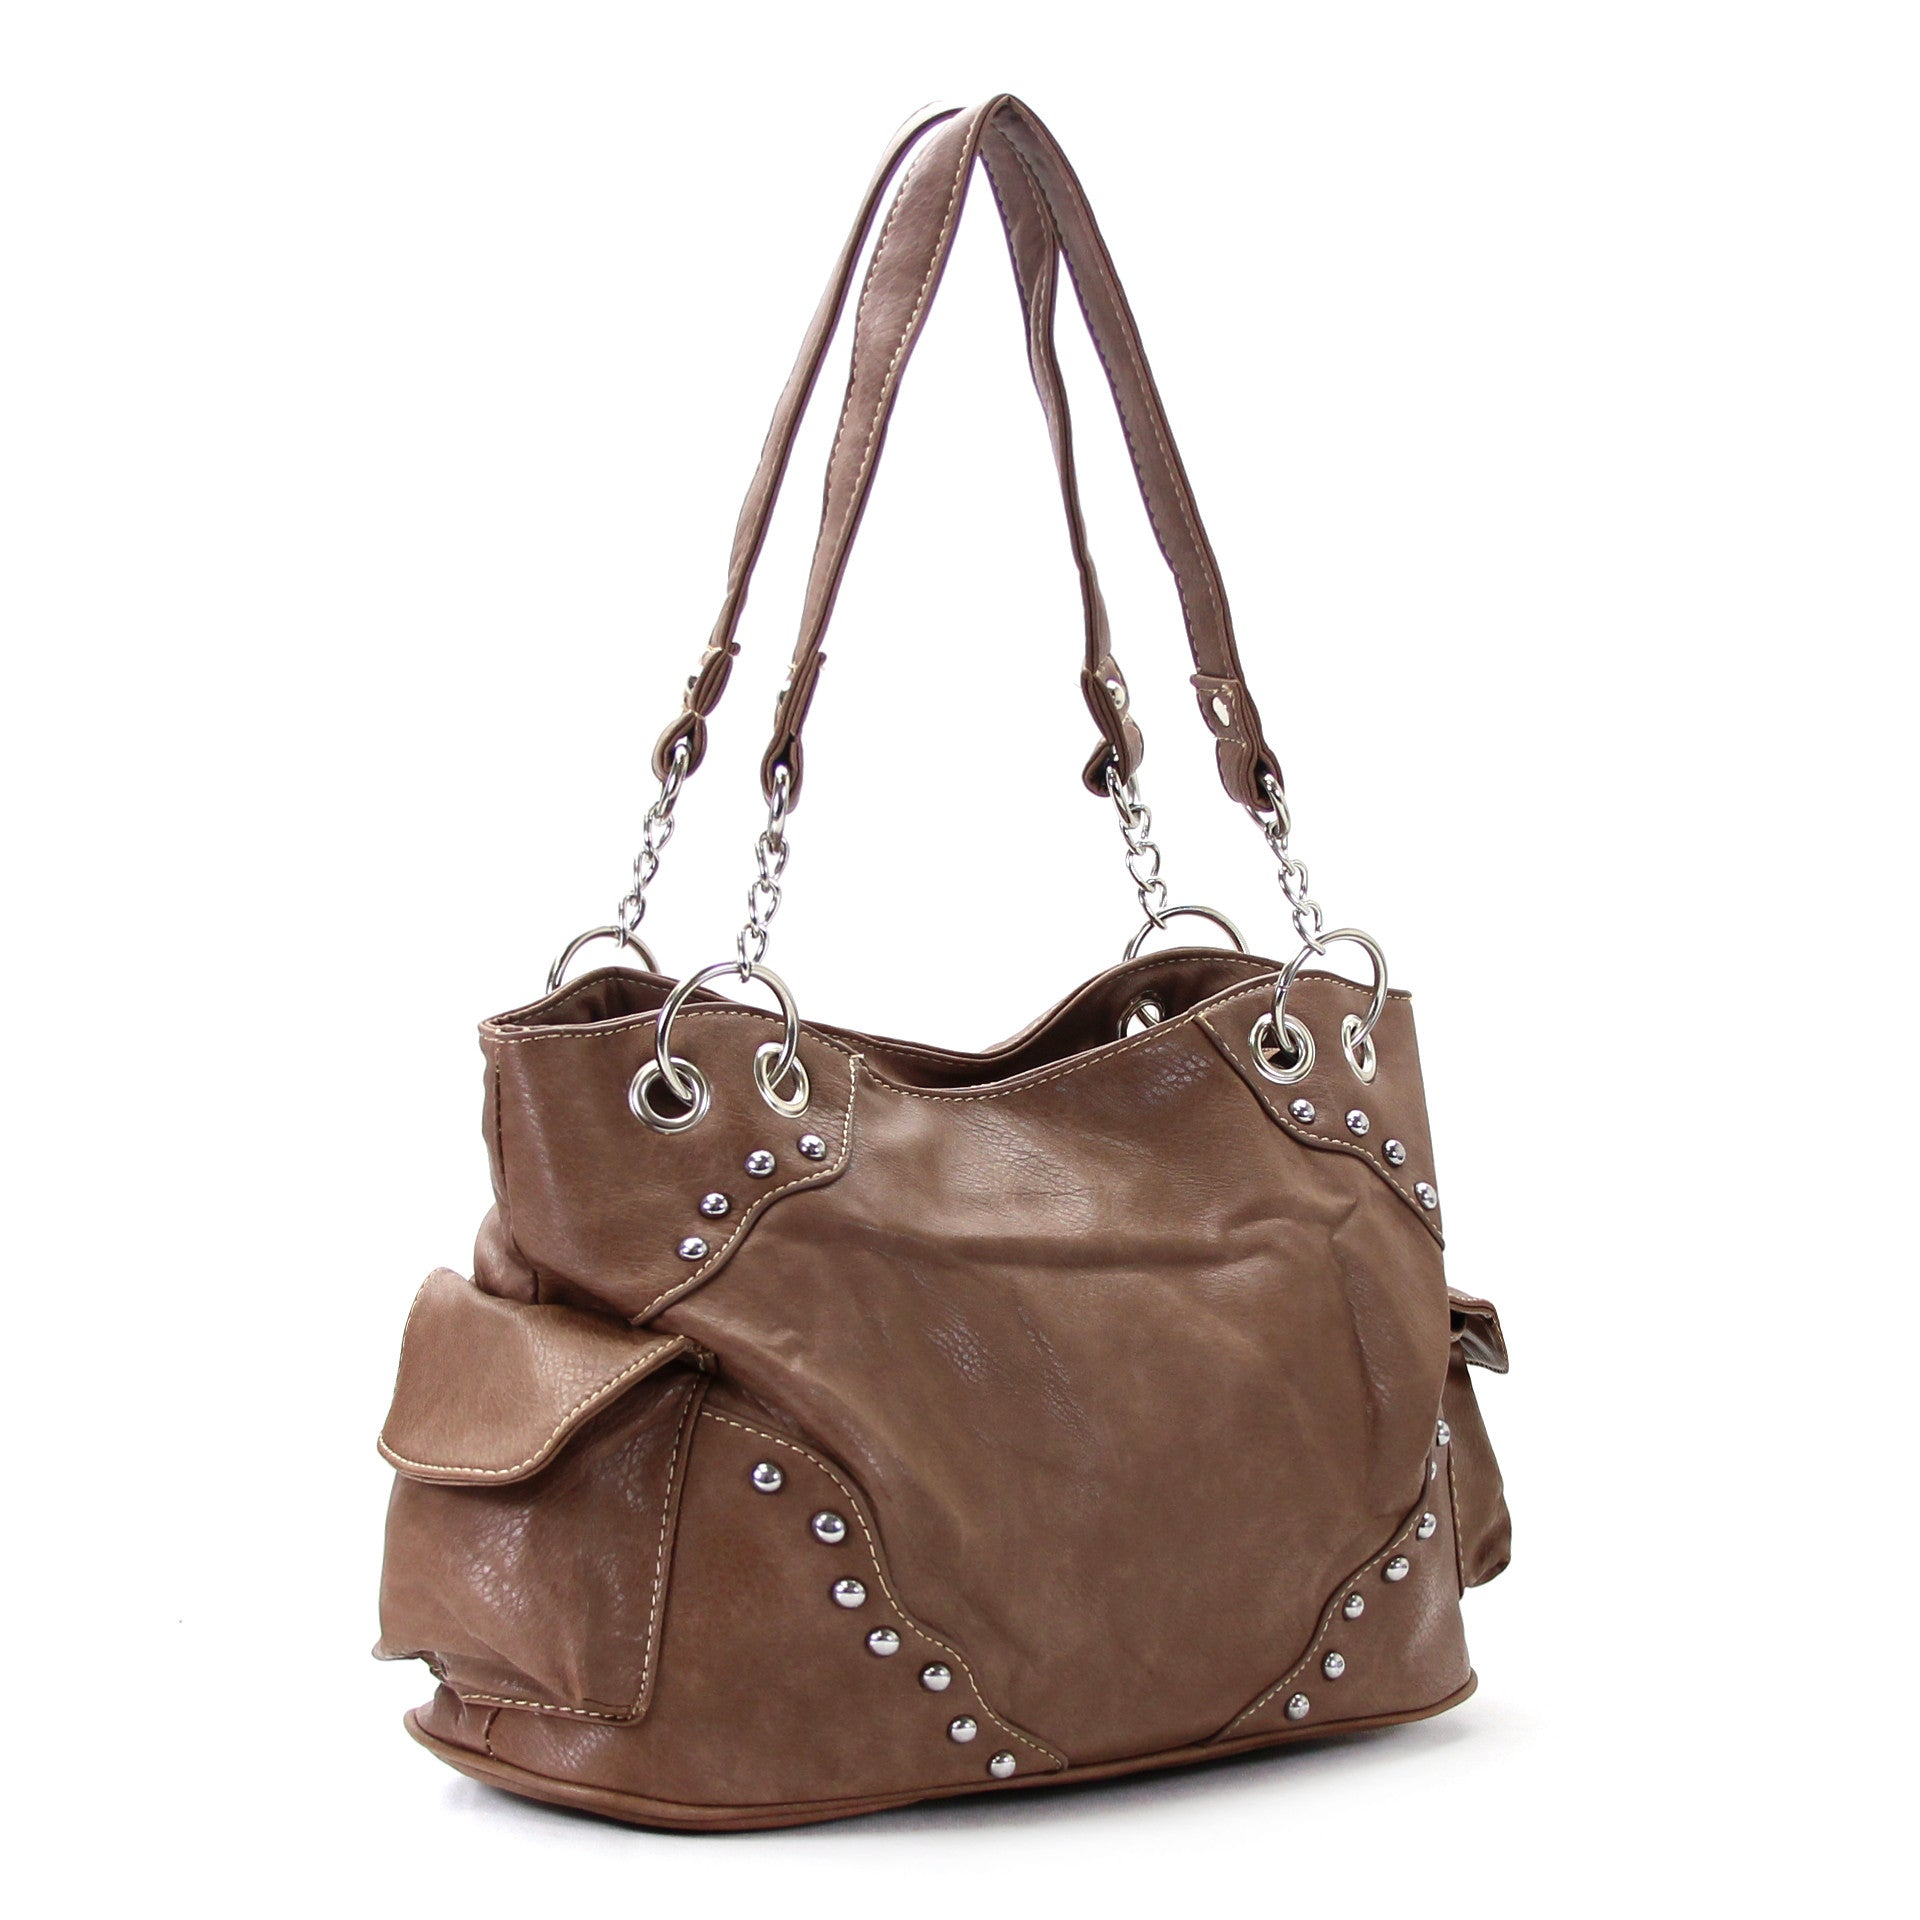 Universal Trendy Studded Slack Purse Handbag Tote Bag - Dark Brown - Pop Fashion